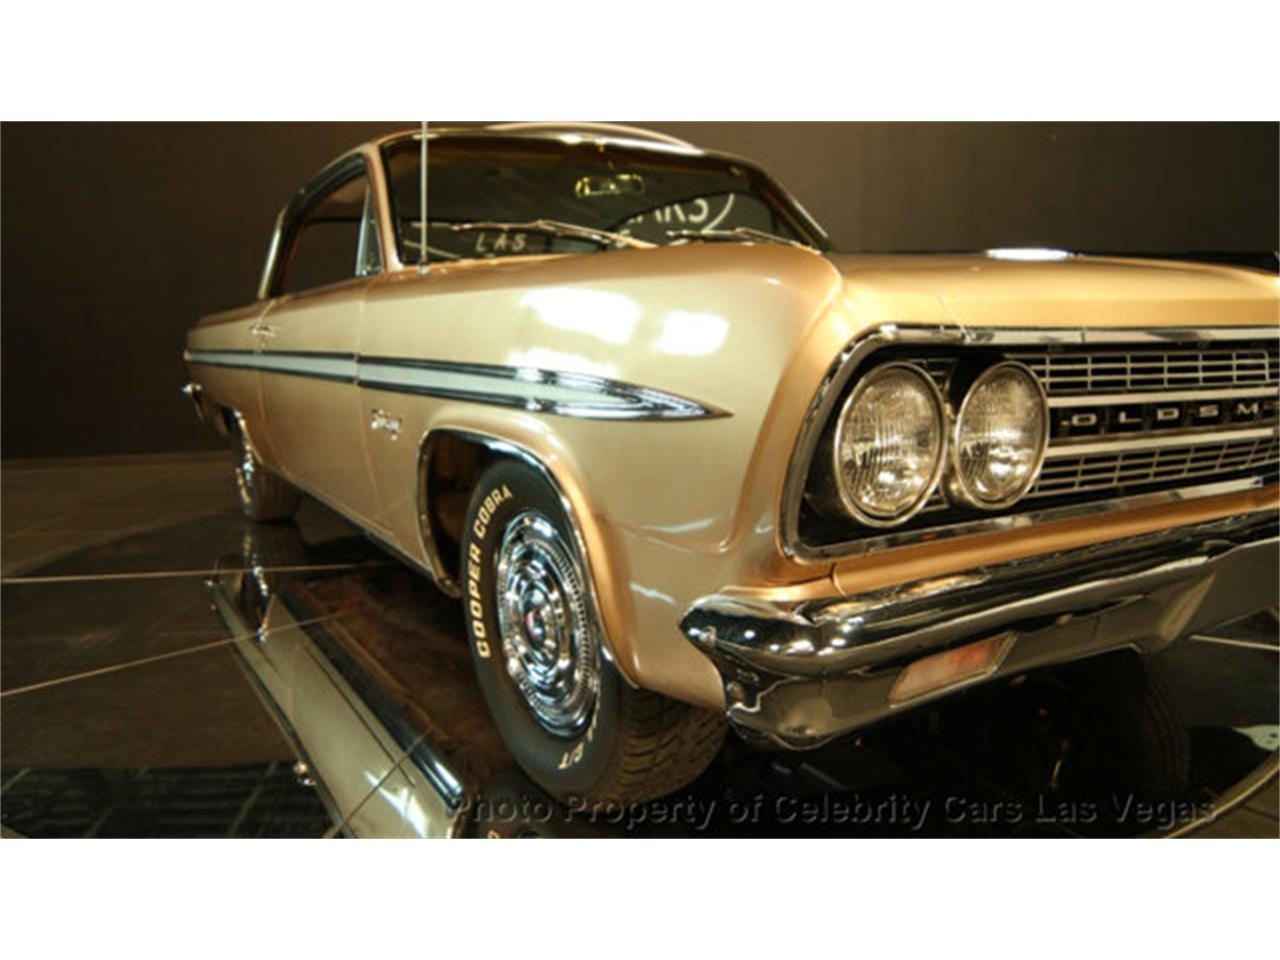 Large Picture of 1963 Oldsmobile Jet fire Turbocharged located in Las Vegas Nevada Offered by Celebrity Cars Las Vegas - J98V